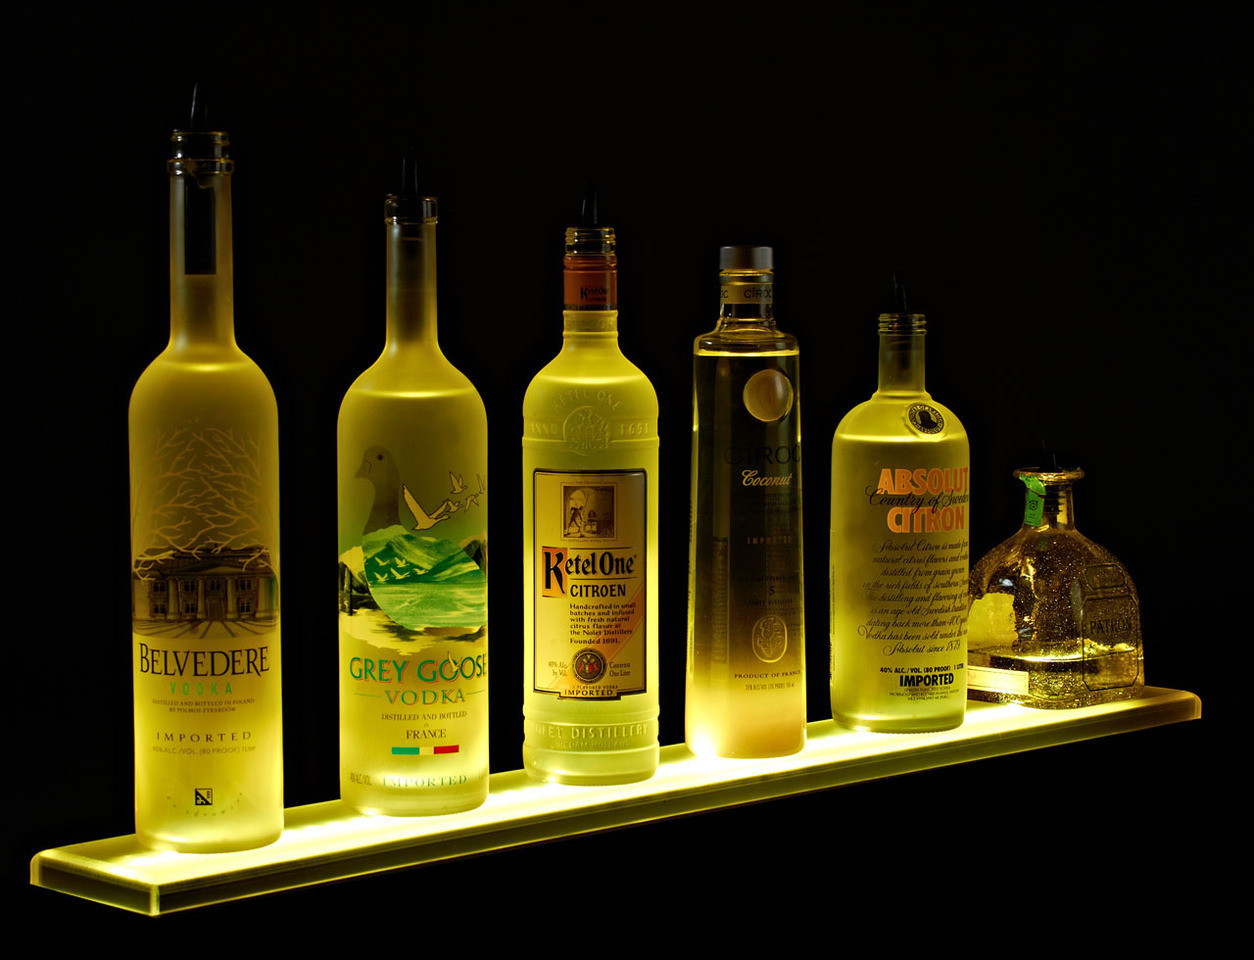 led-liquor-shelves-display-bottle-glorifier-glorifier-led-bar-bottle-displays-led-bottle-display-led-bottle-displays-led-glorifiers-liquor-shelves-nightclubshop-lat-panel.jpg